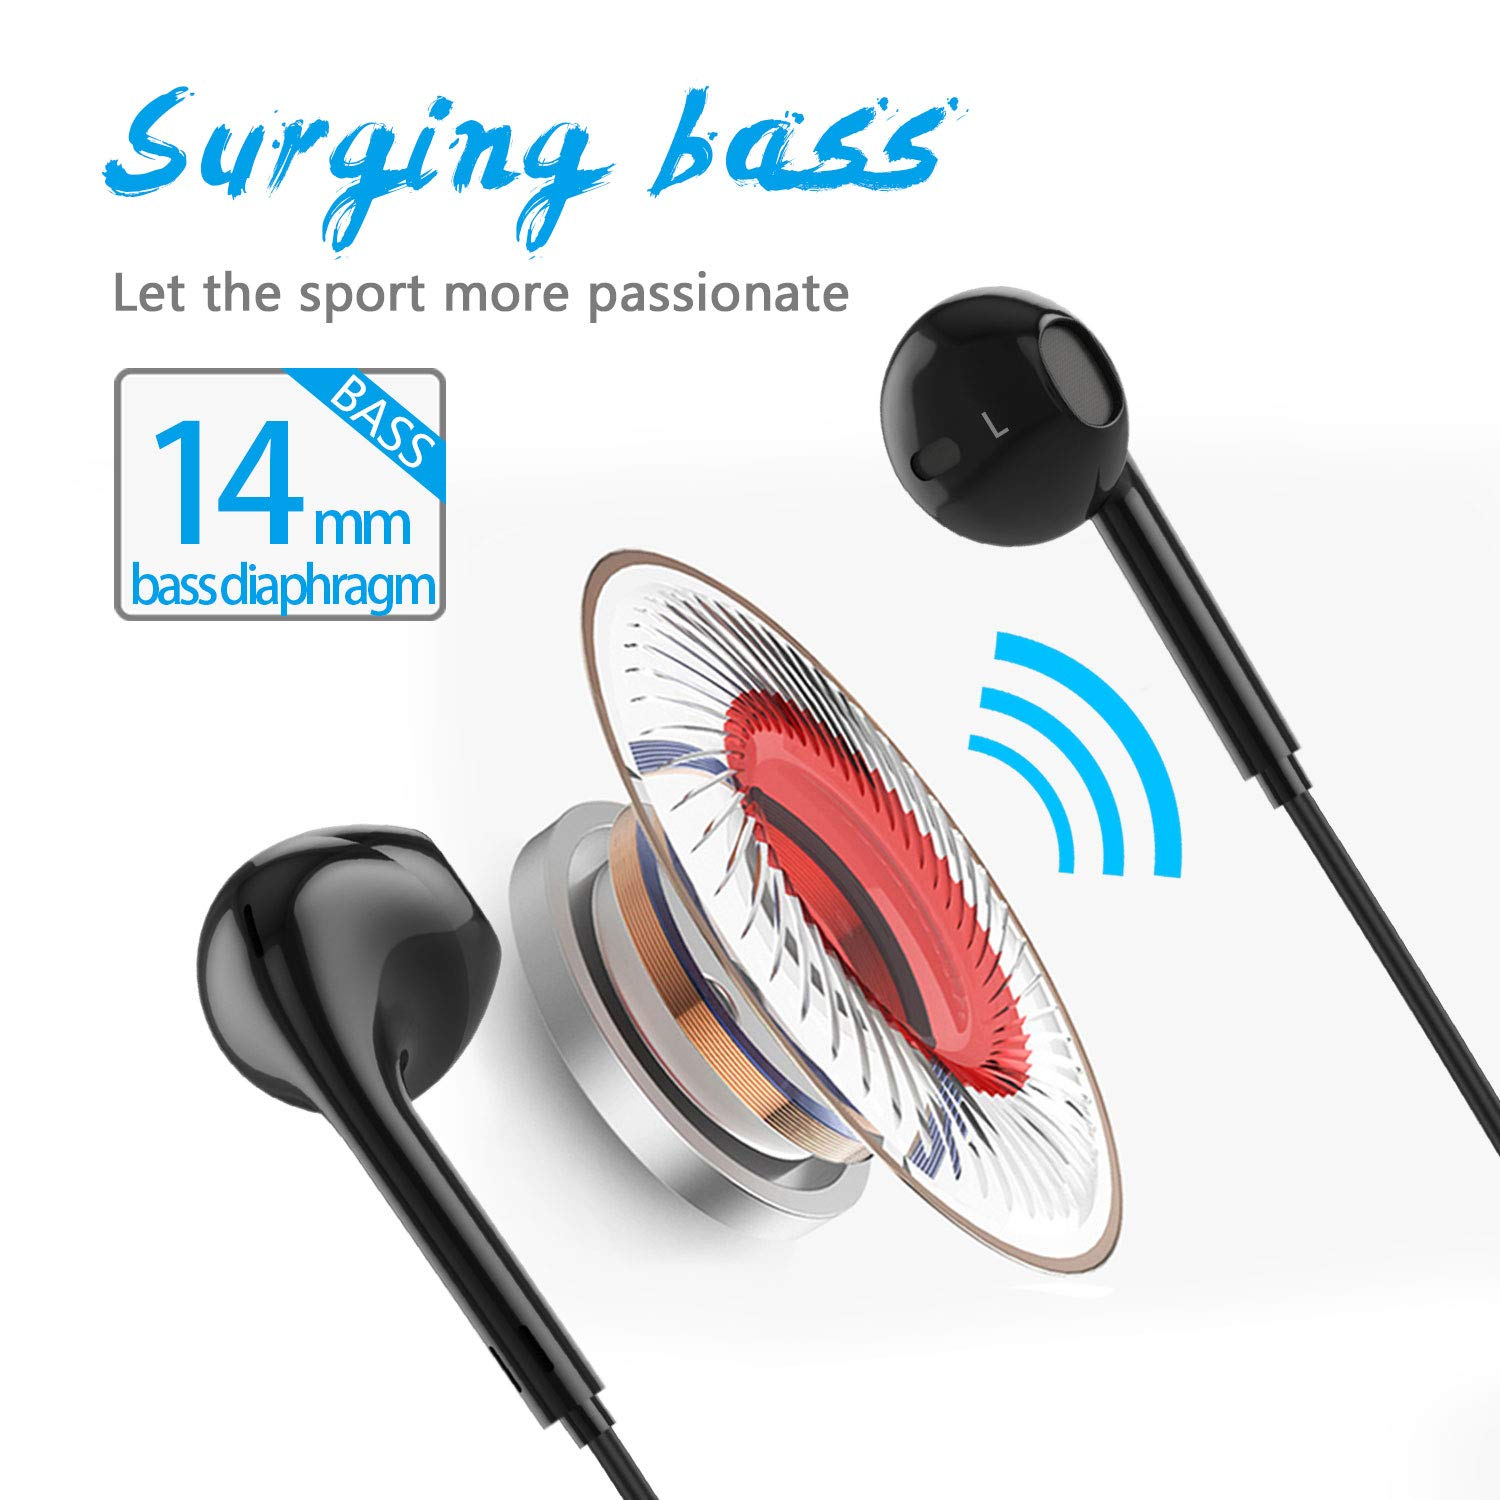 Bluetooth Headphones, Wireless Bluetooth Headset 4.1 AptX Stereo Earphones, IPX4 Waterproof Lightweight Earbuds, 6 Hrs Playtime for Commuting, Sports, Gym, Traveling with cVc 6.0 Noise Cancelling Mic